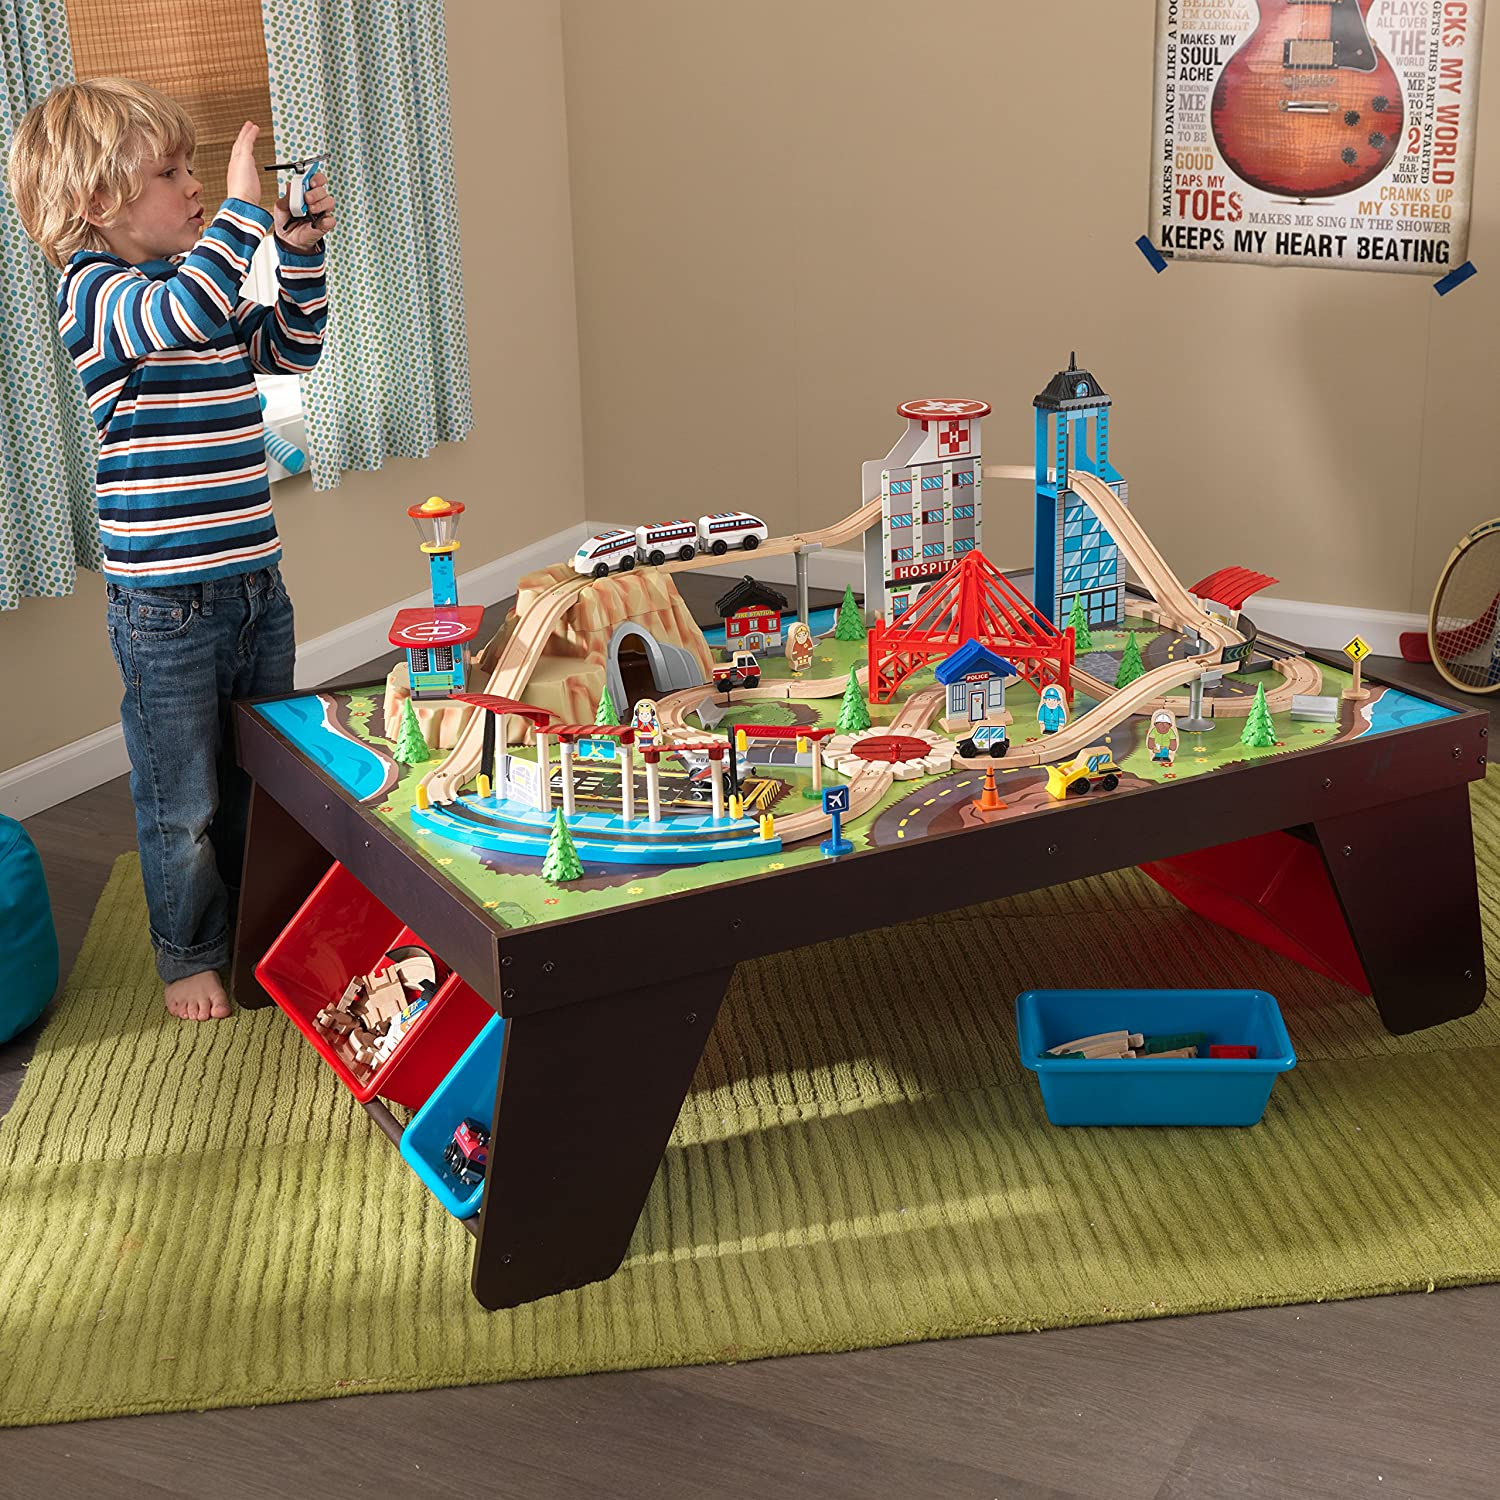 & Amazon.com: KidKraft Aero City Train Set u0026 Table: Toys u0026 Games